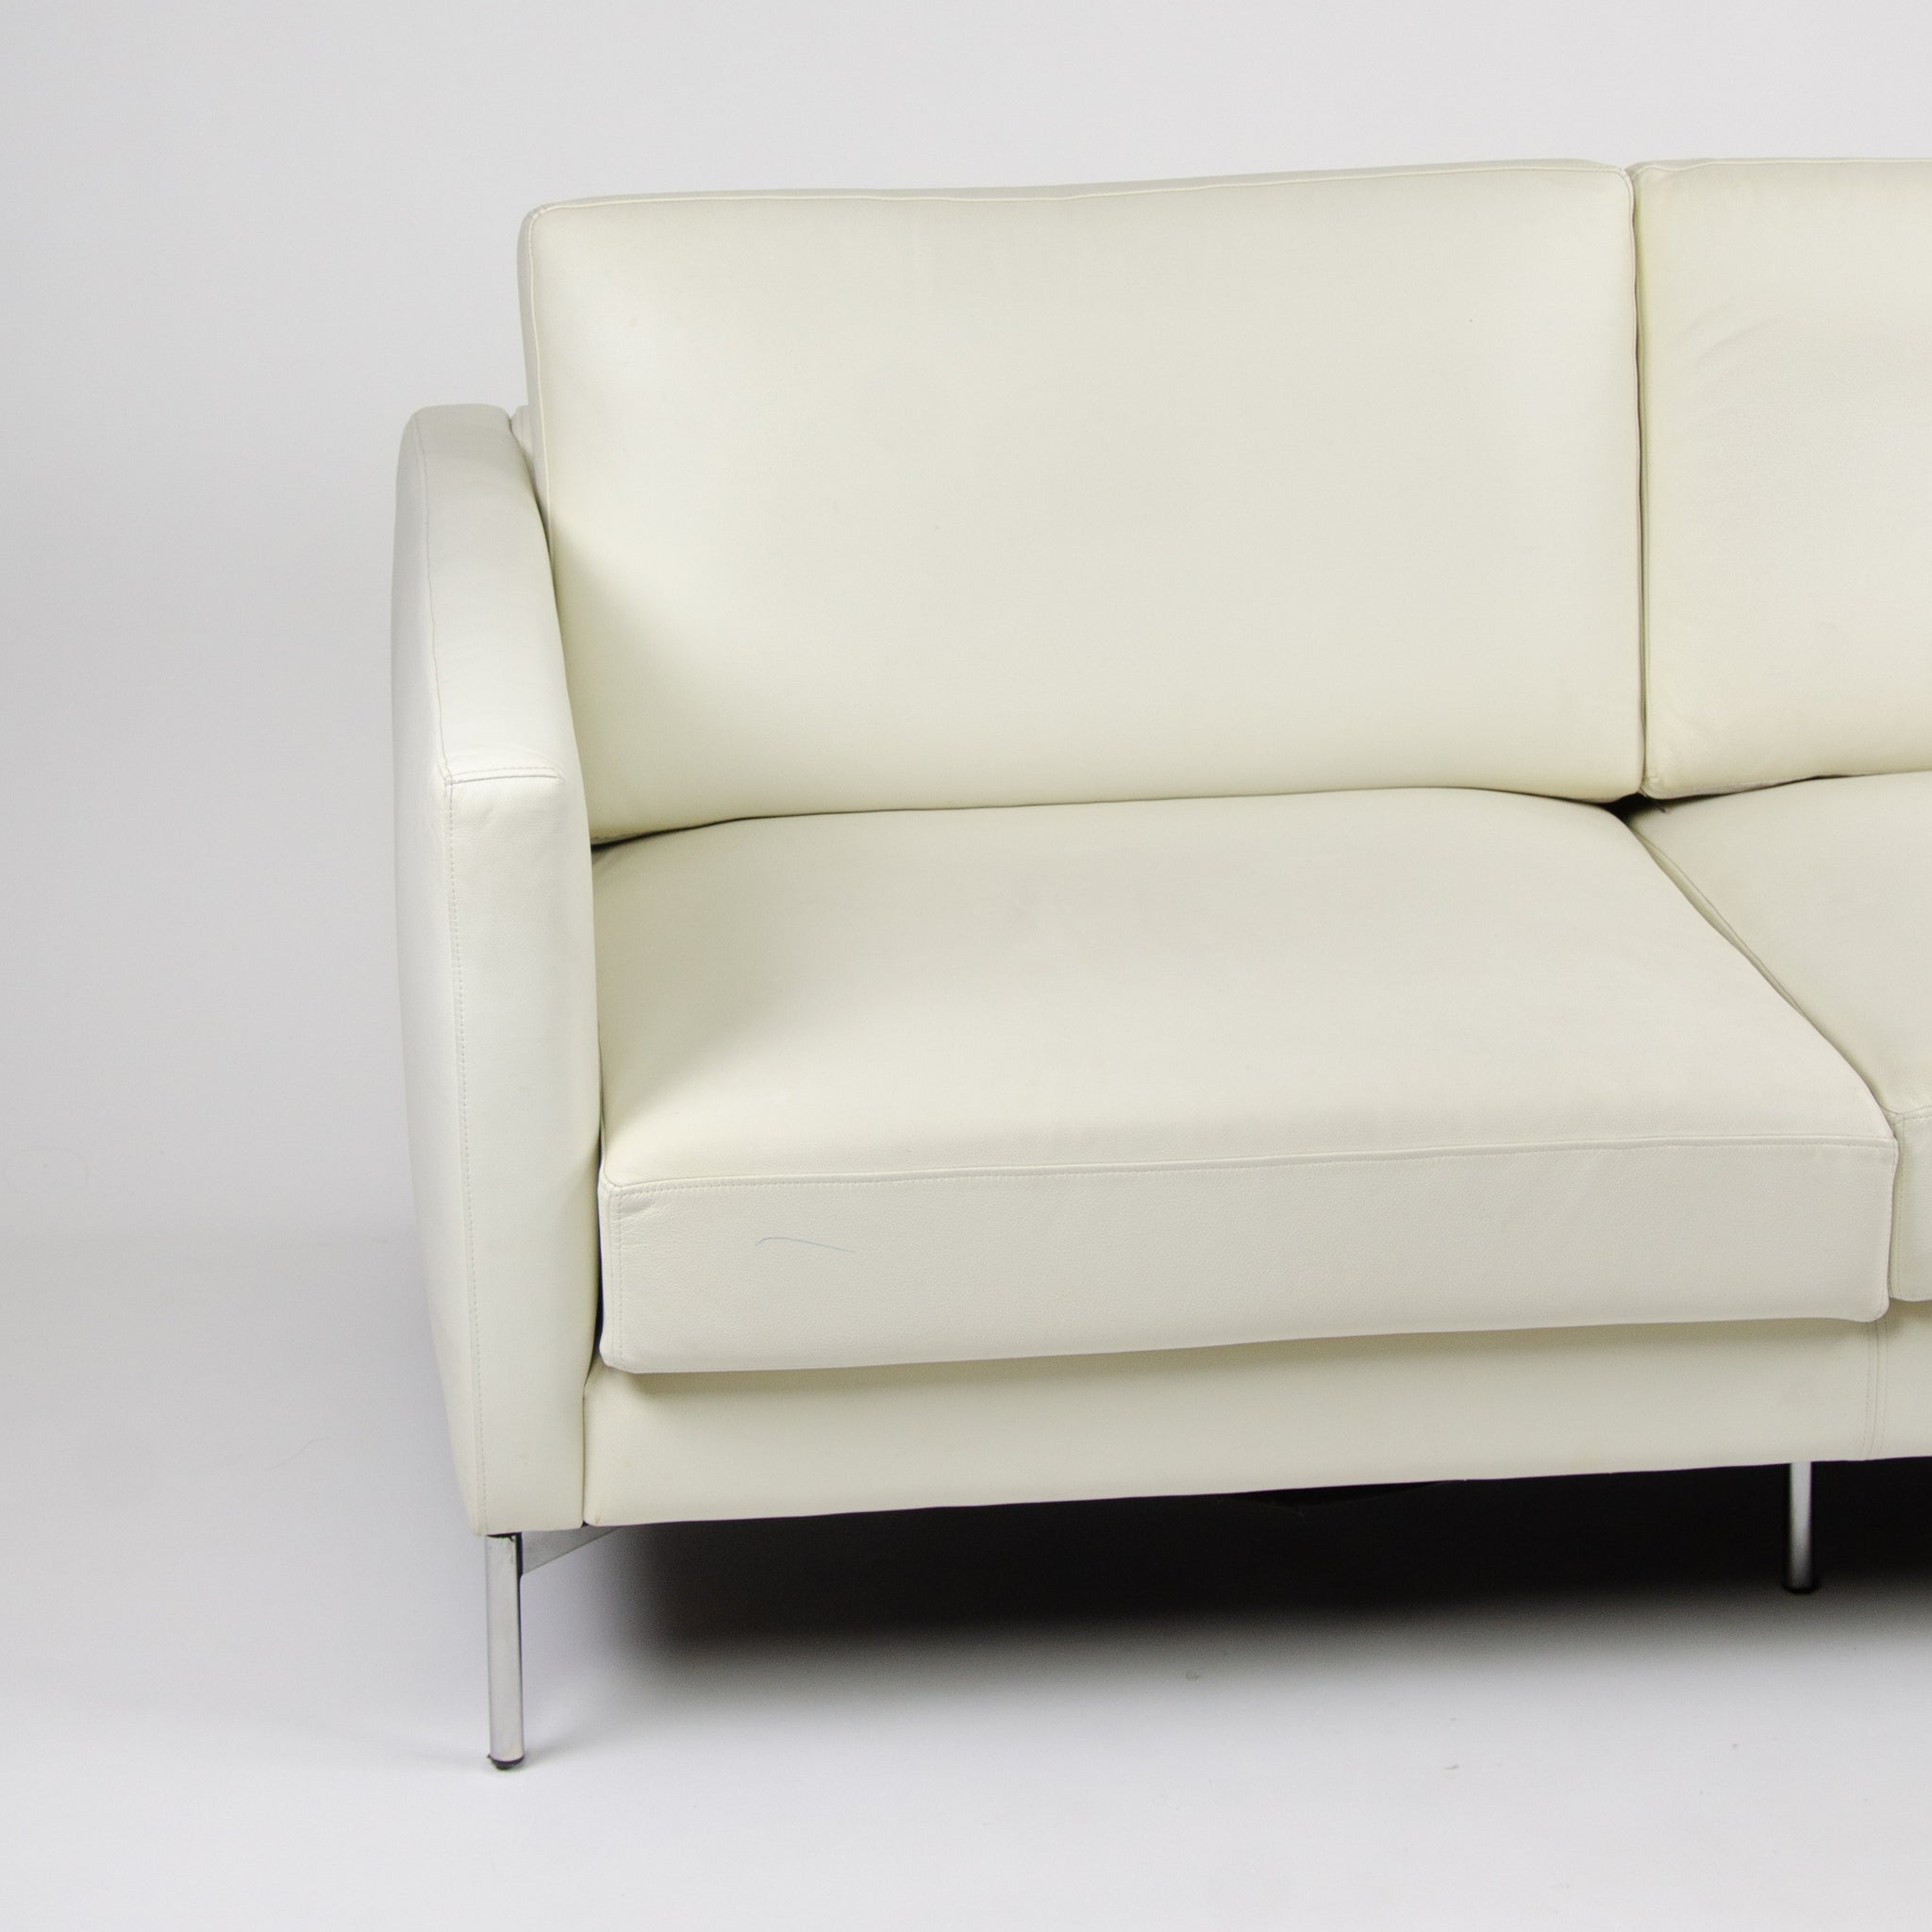 SOLD Knoll International Divina Settee Sofa by Piero Lissoni MINT! Ivory Leather